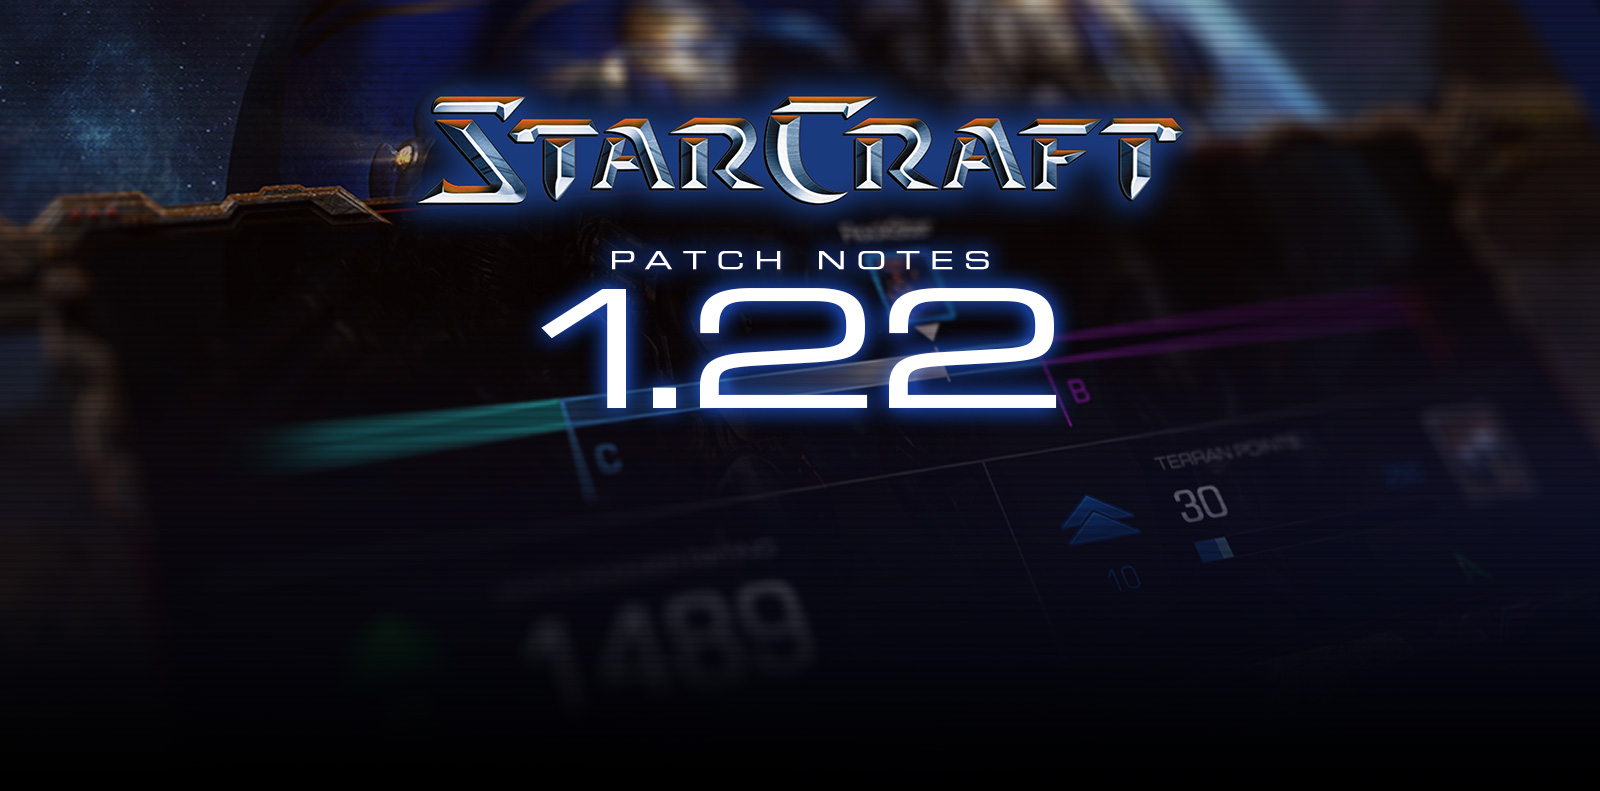 StarCraft: Remastered Patch 1.22.0